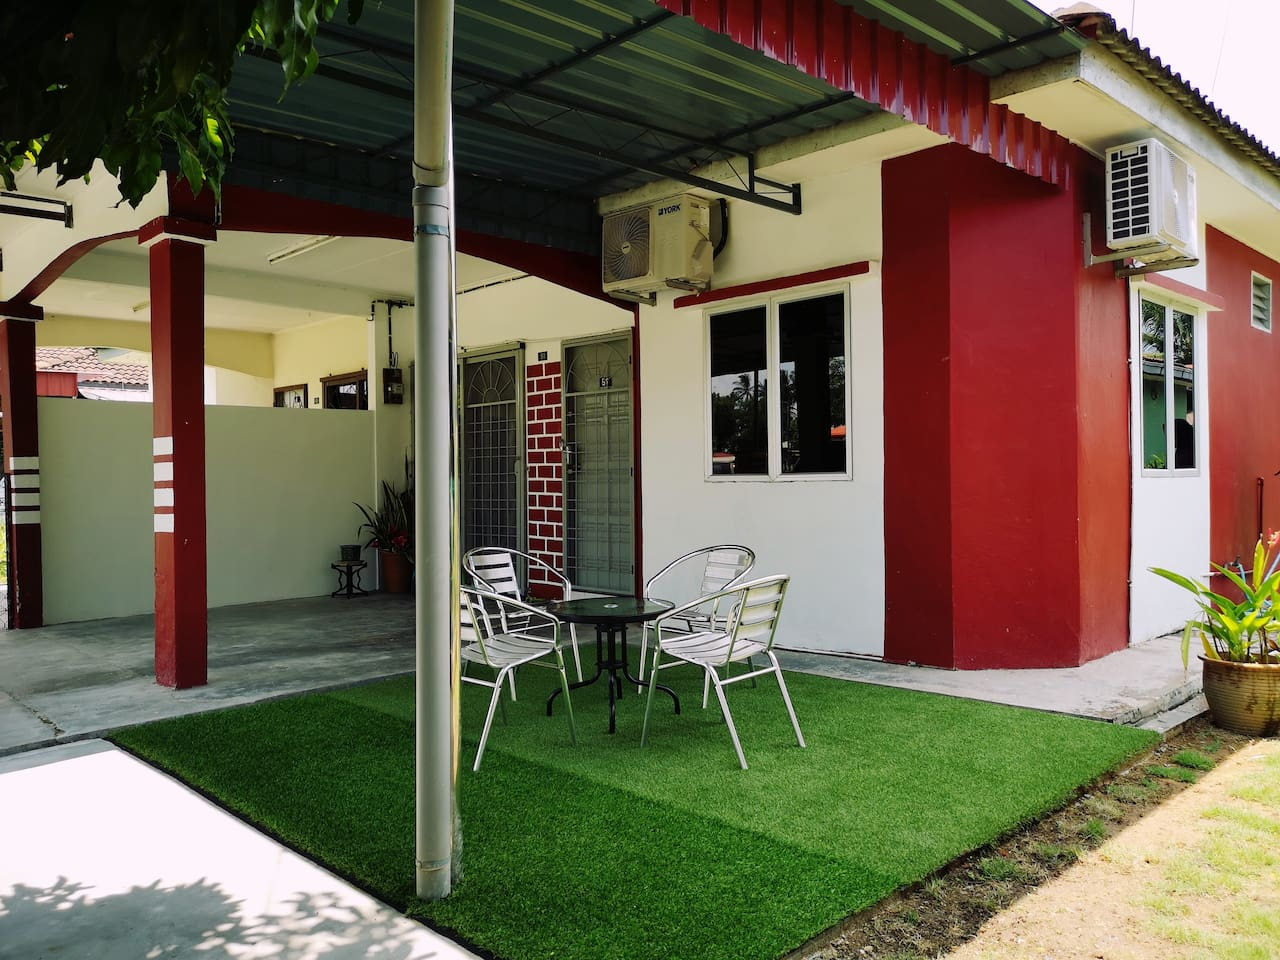 Ayang Guest House - Fully air conditioned bedroom and living room.